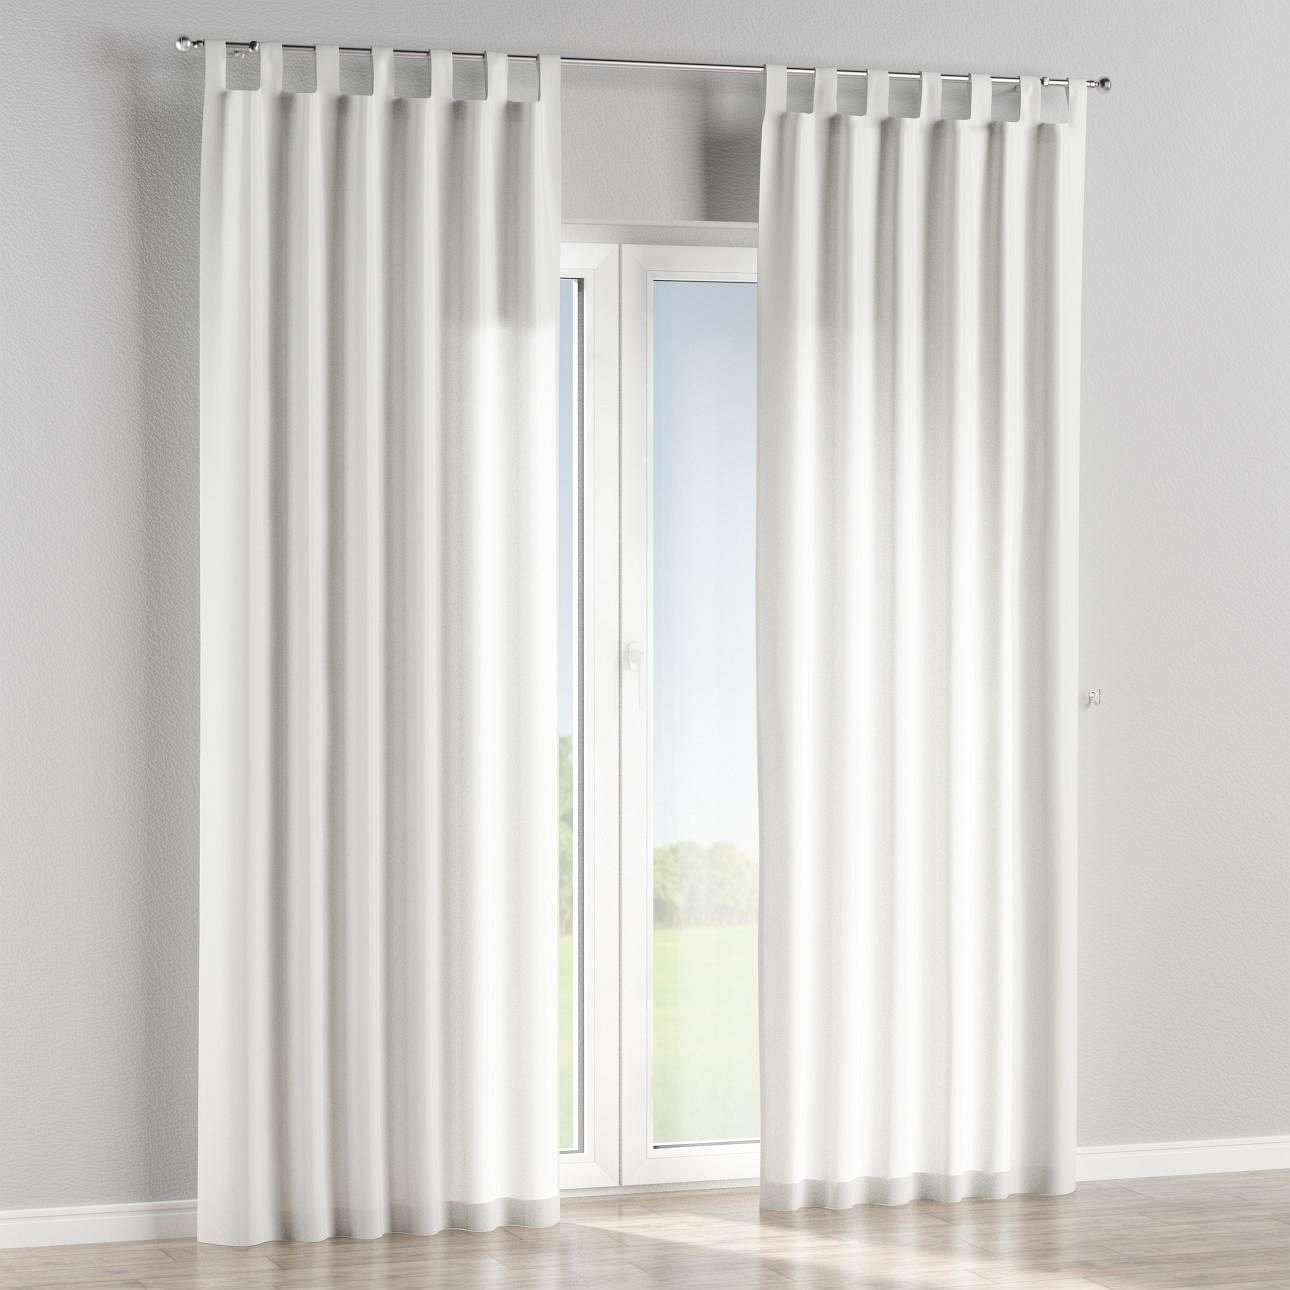 Tab top curtains in collection Norge, fabric: 140-92